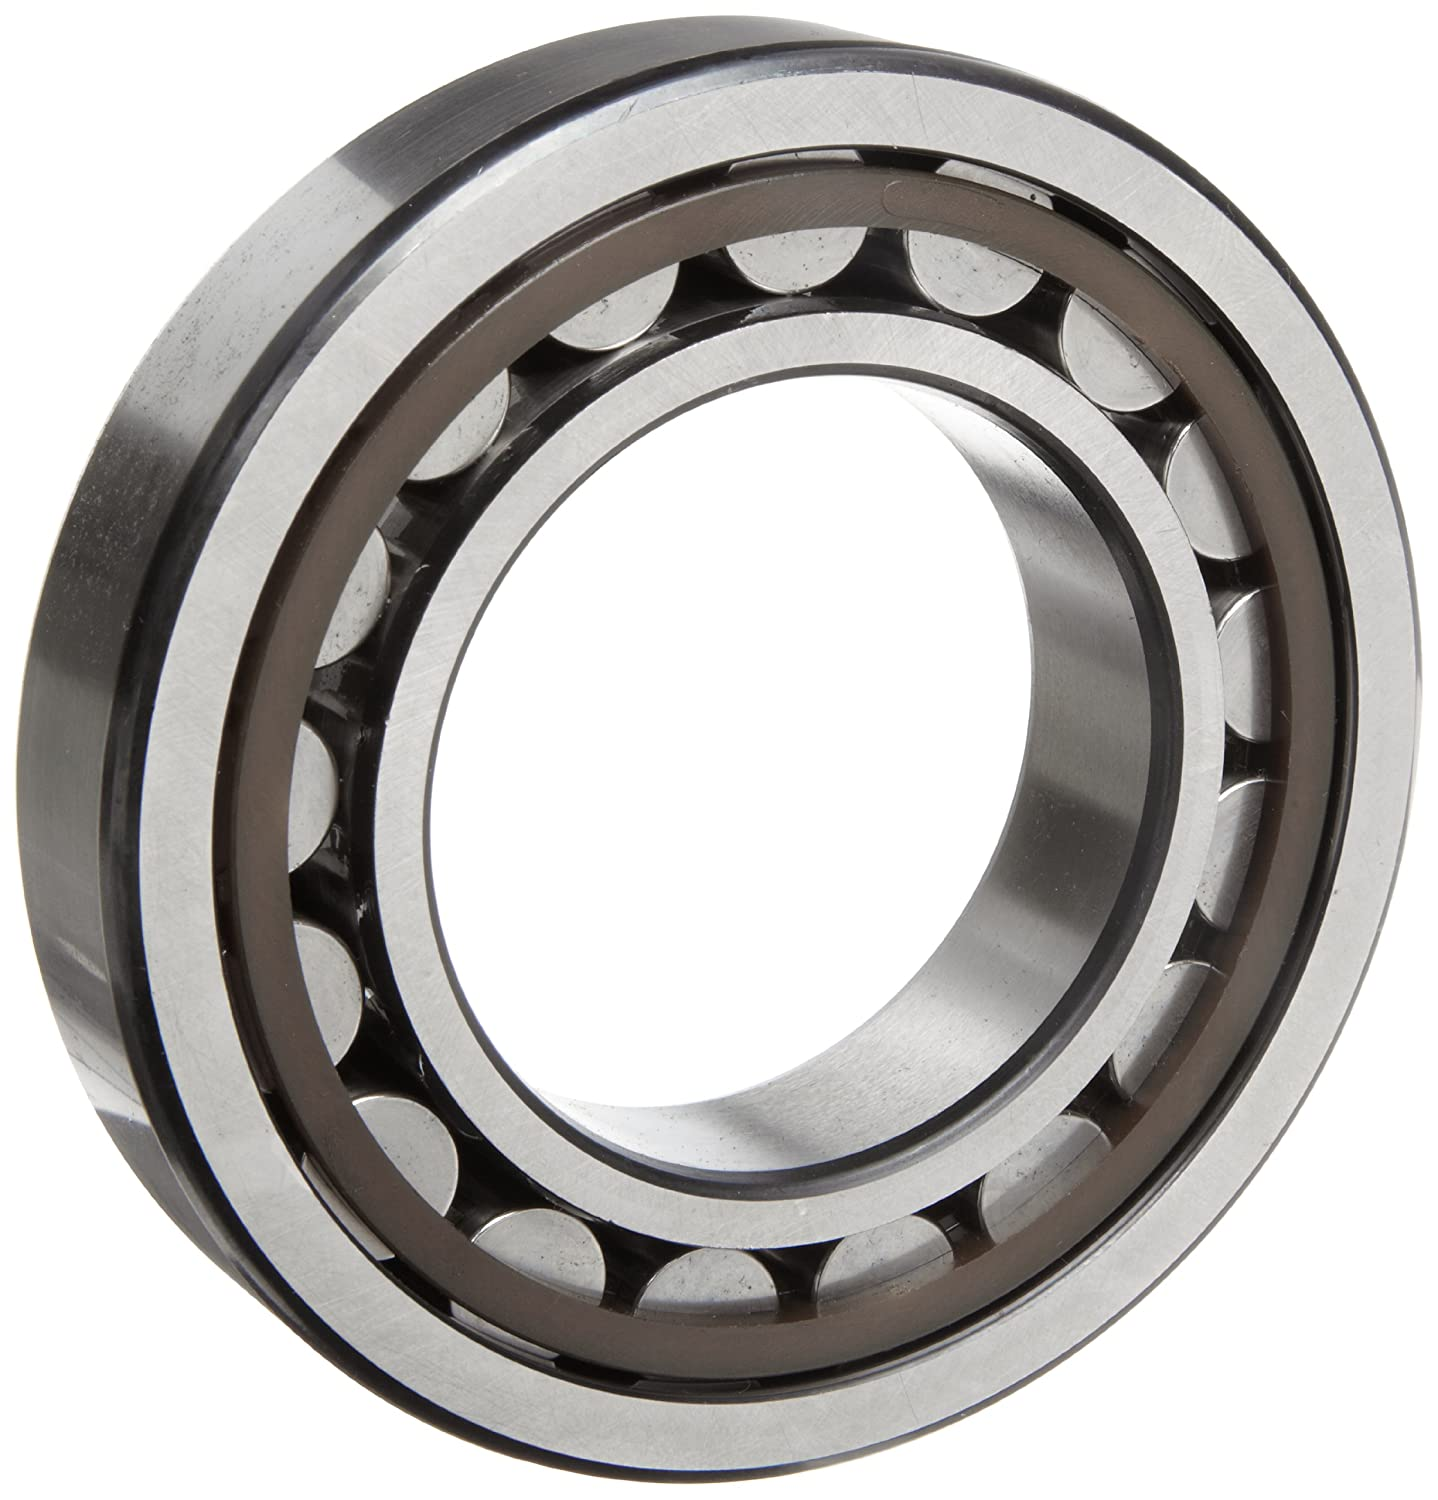 Japan's largest Super popular specialty store assortment SKF NJ 206 ECP Cylindrical Bearing Roller Ring Removable Inner